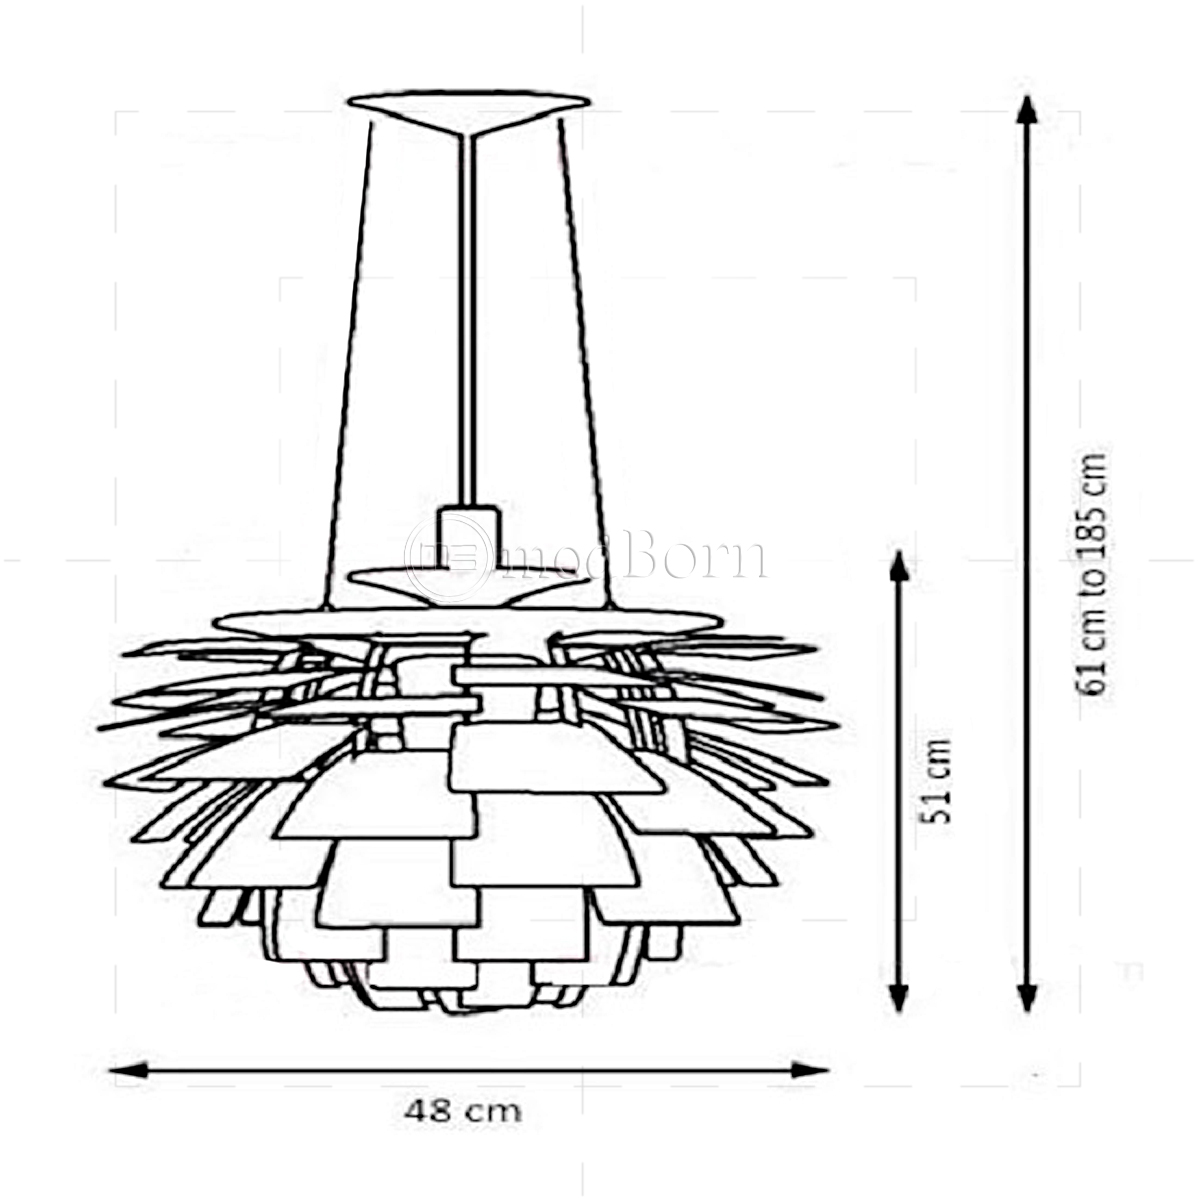 Light Bulb Idea Drawing likewise Textured Paint On Concrete Block together with Loft Conversion also Katie 9 Light Chandelier Polished Chrome likewise House Plans Avon Indiana. on lighting for living room